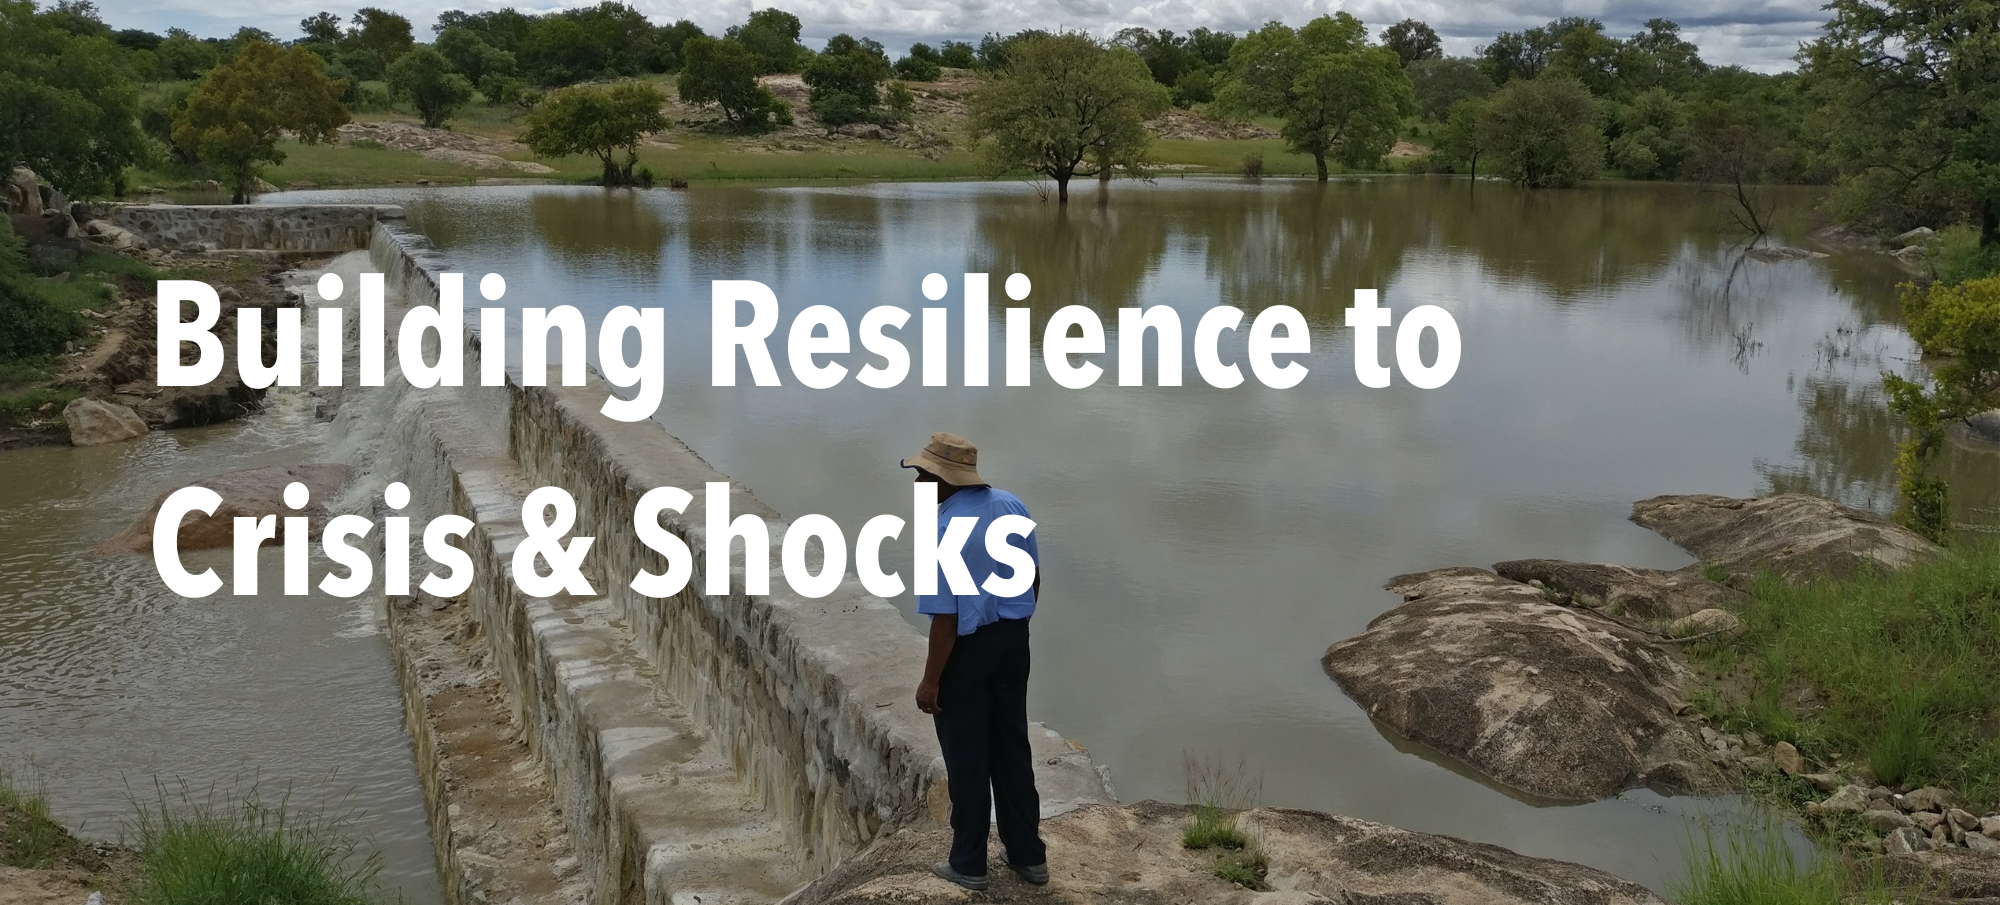 """Man in front of dam in Zimbabwe with header text """"Building Resilience to Crisis & Shocks"""""""